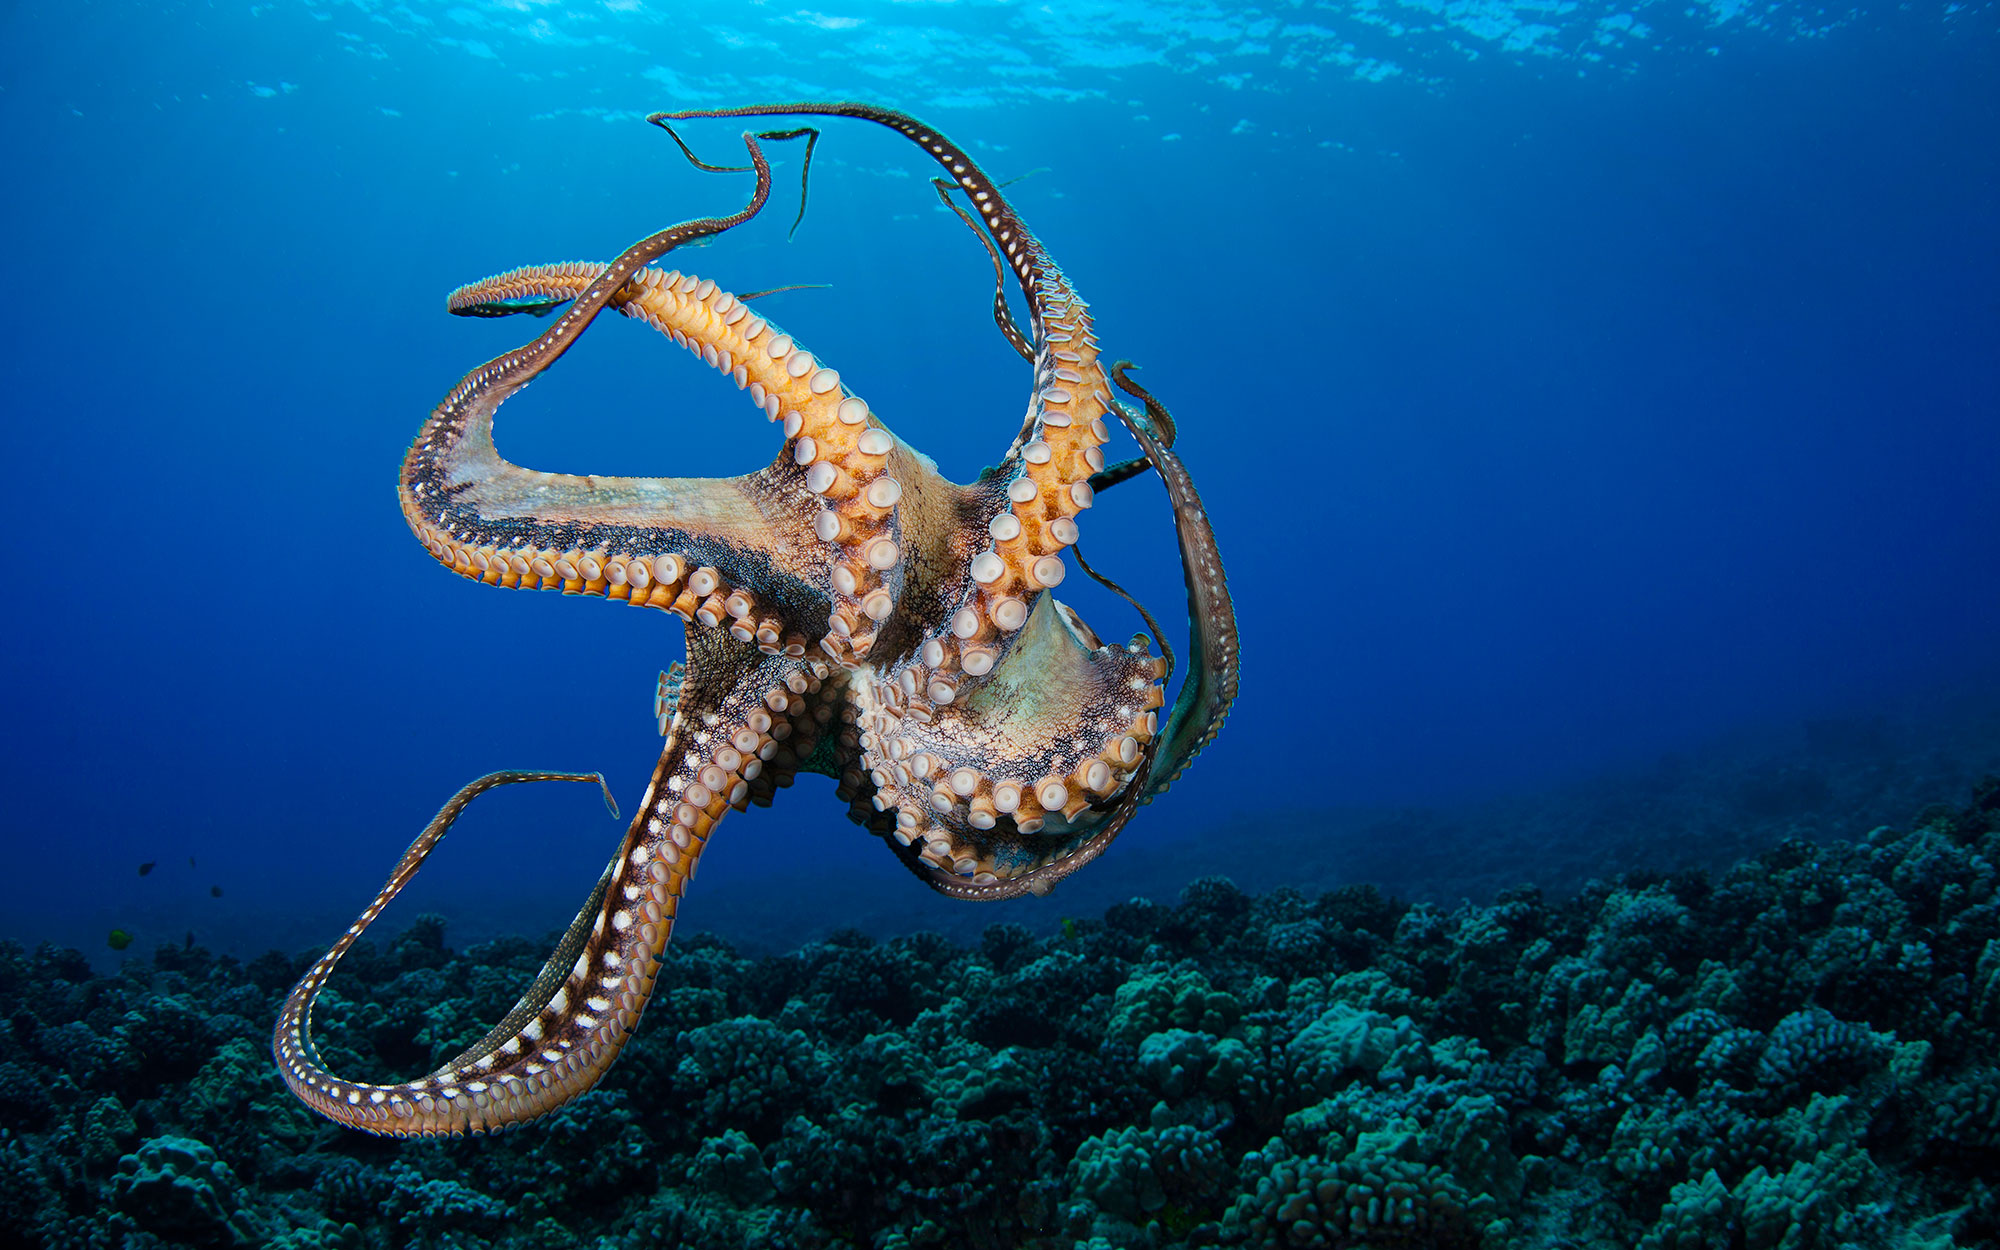 Octopus Makes Brazen Escaped From New Zealand Aquarium